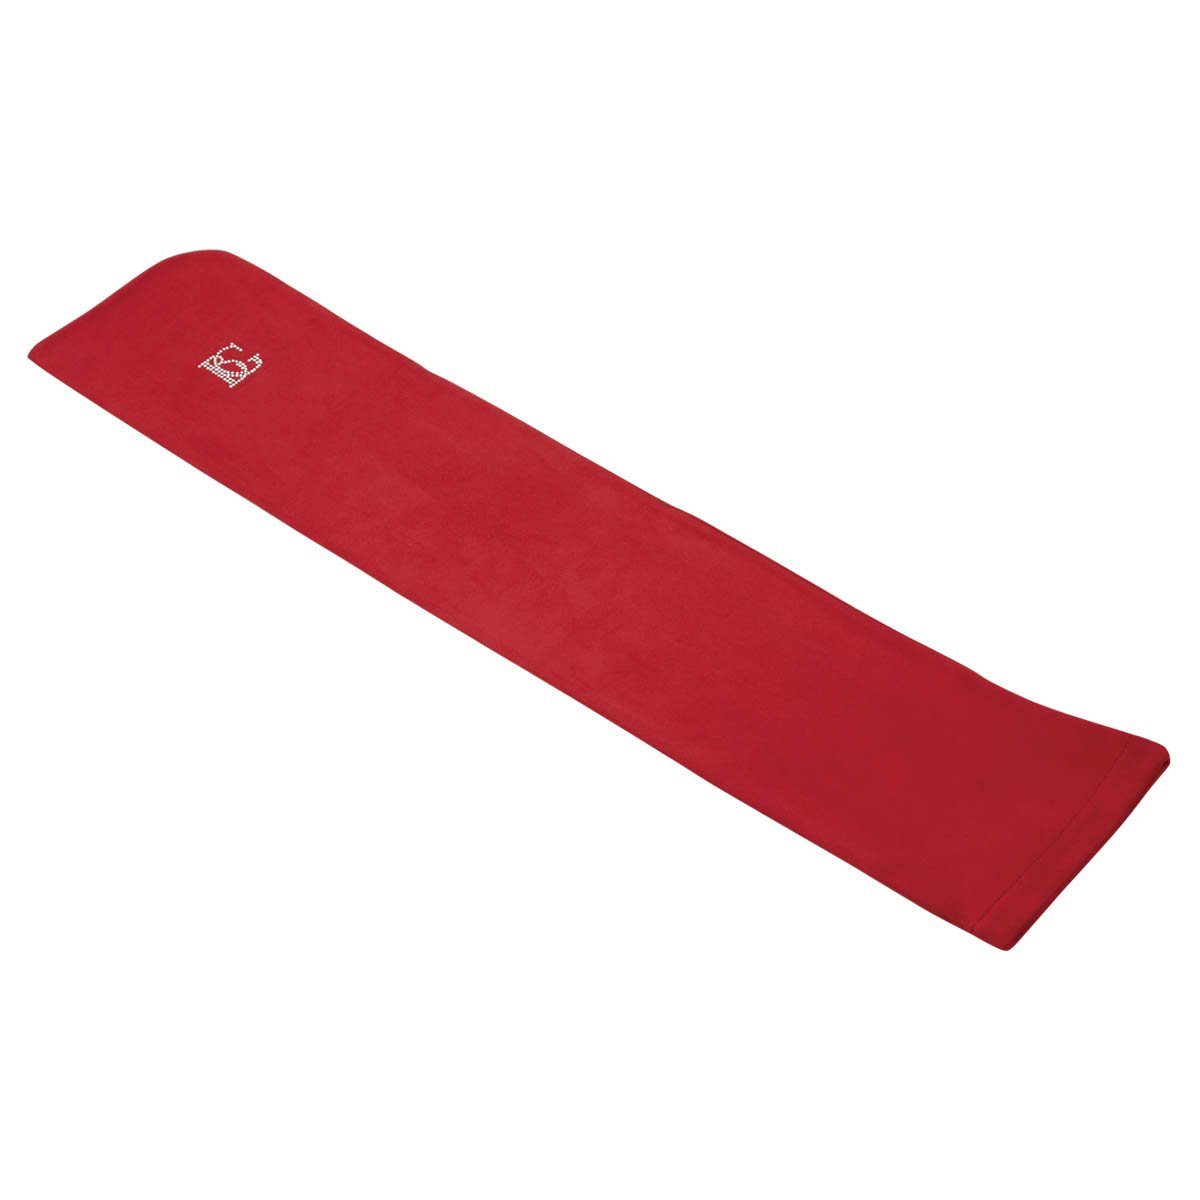 BG A68R Instrument Protection Cozy for Flute/Oboe/Clarinet/Soprano - Microfiber Red